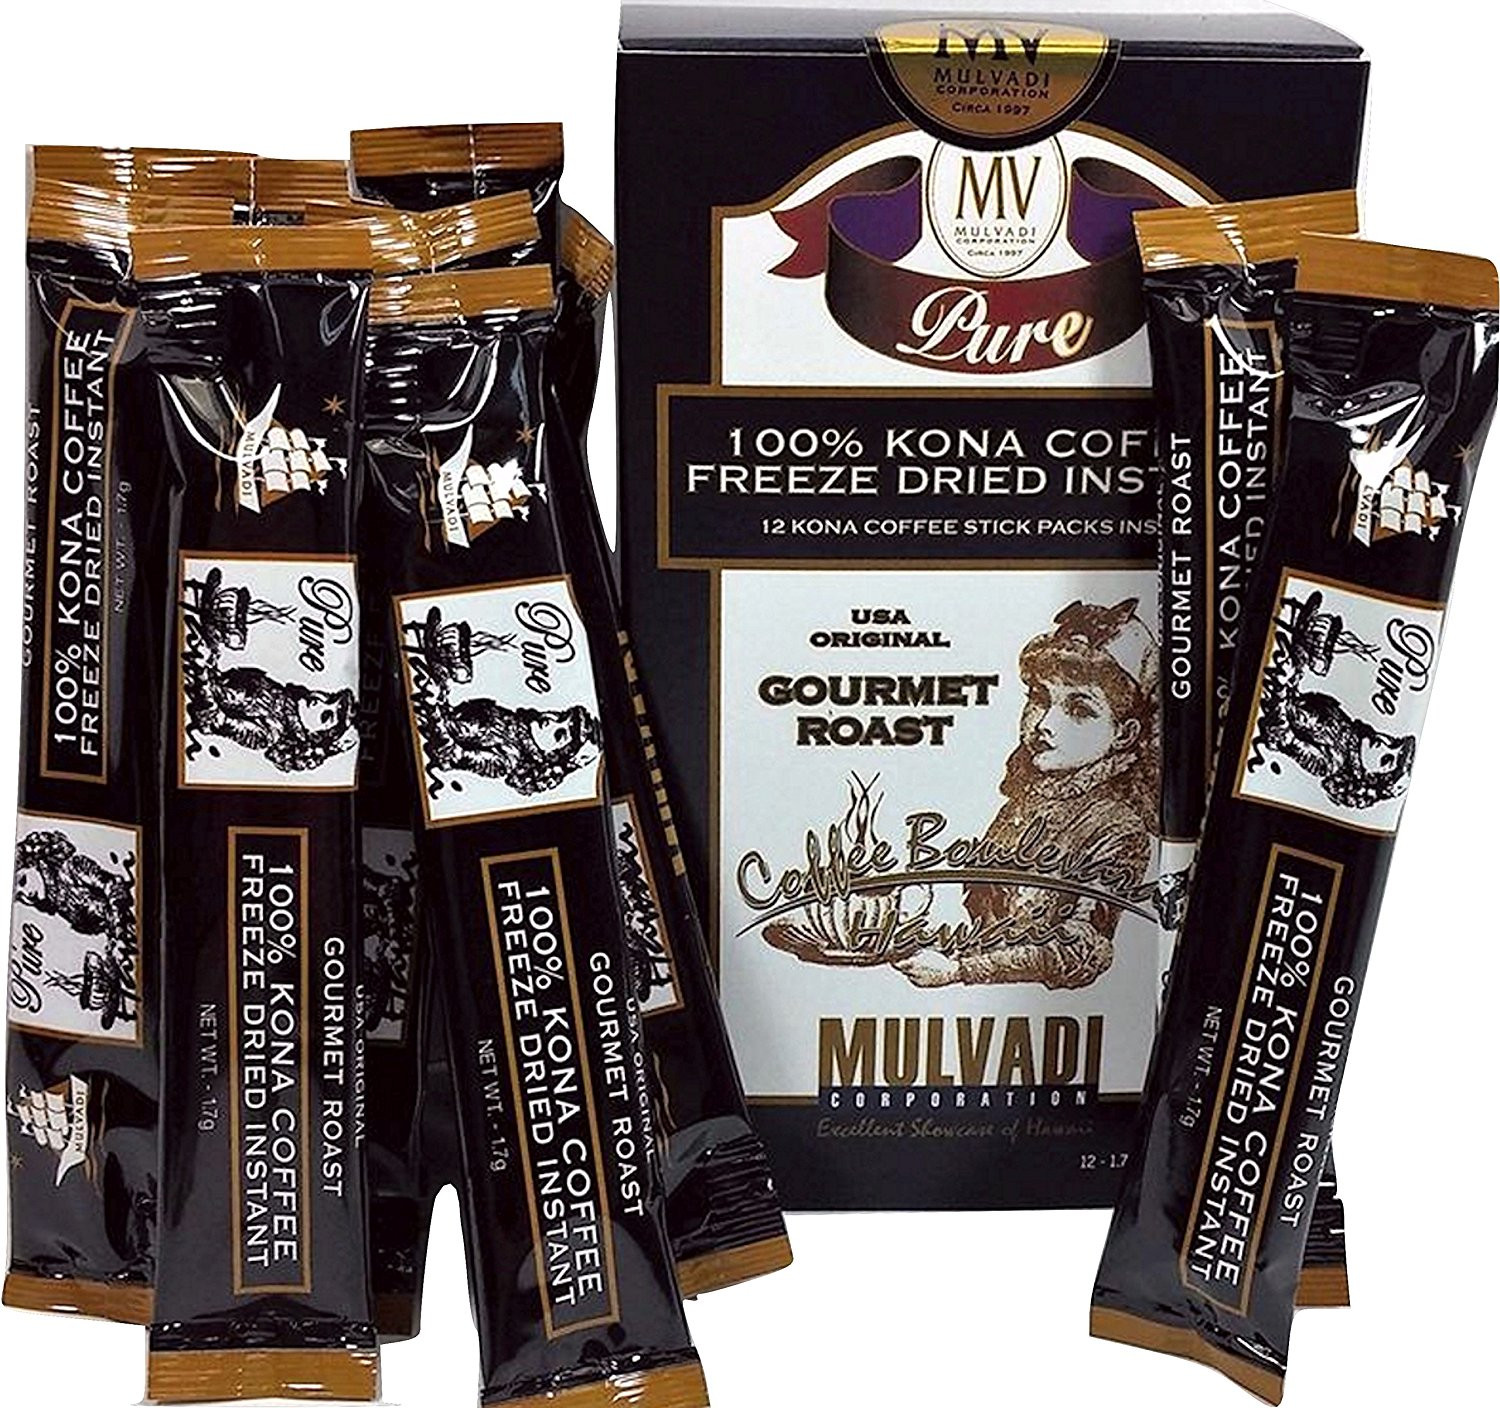 Click here to buy 100% Kona Coffee Freeze Dried Instant (12 Individual 1.7g Stick Packs).